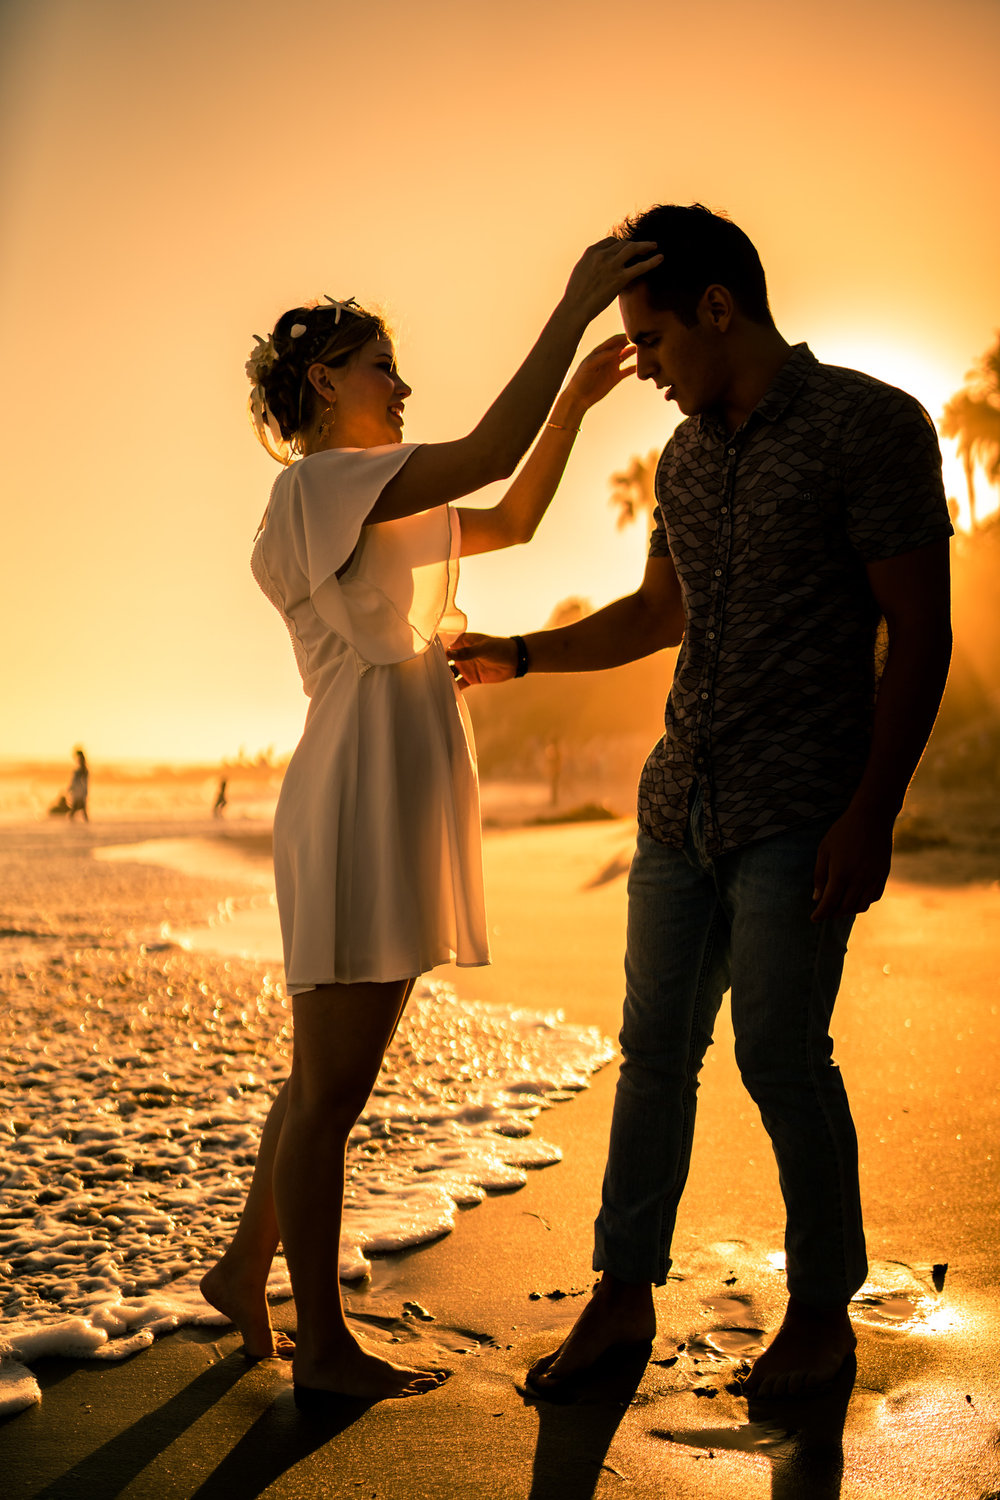 20__Bruno-Amanda-Laguna-beach-engagement_Joseph-Barber-Weddings_2908.jpg